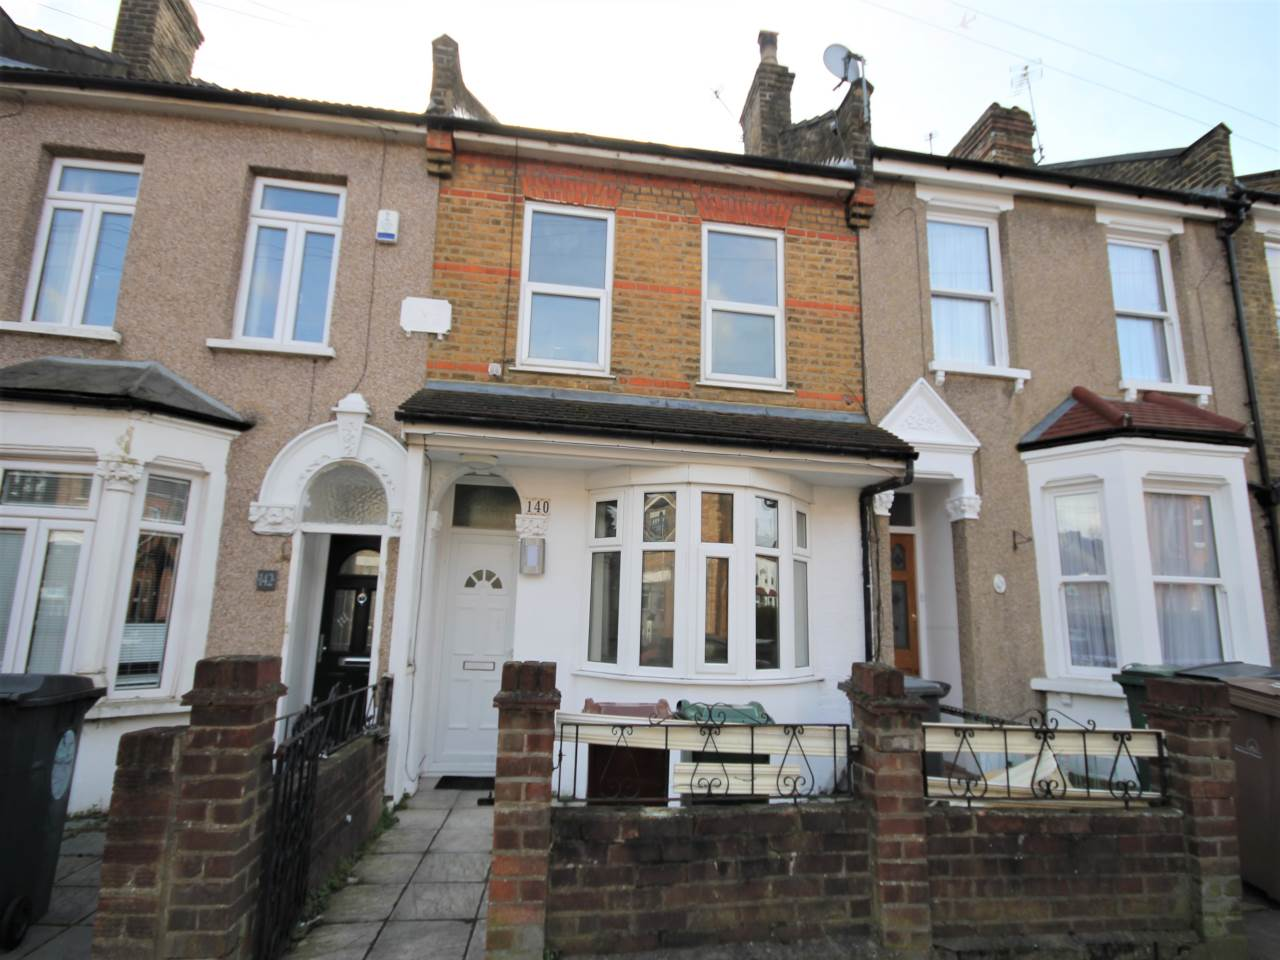 6 bed house to rent in Walthamstow - Property Image 1